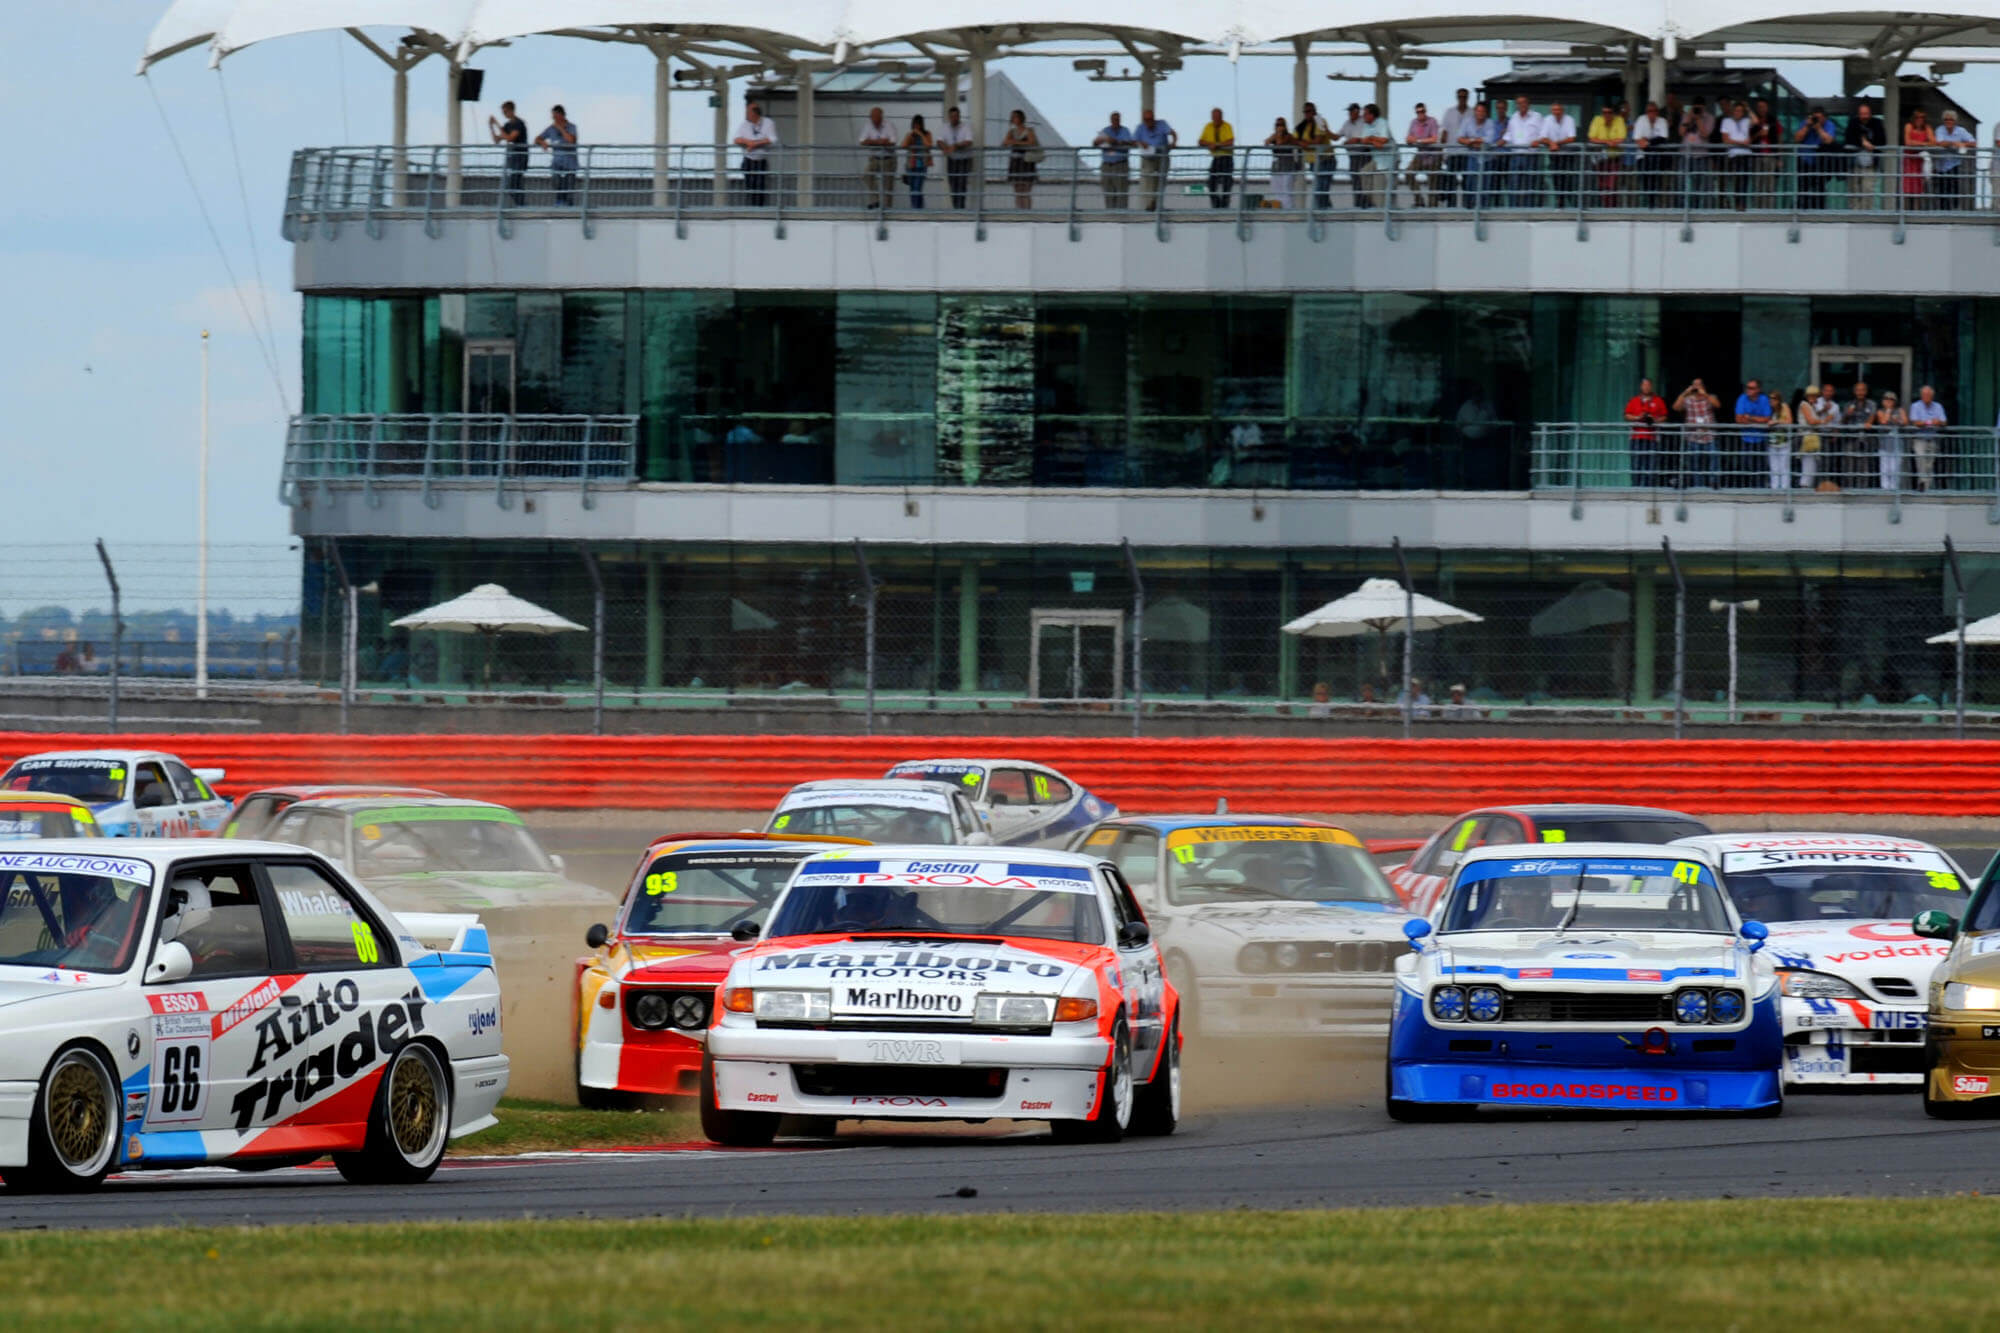 Classic cars racing in the Historic Touring Car Challenge in front of the BRDC building at The Classic at Silverstone